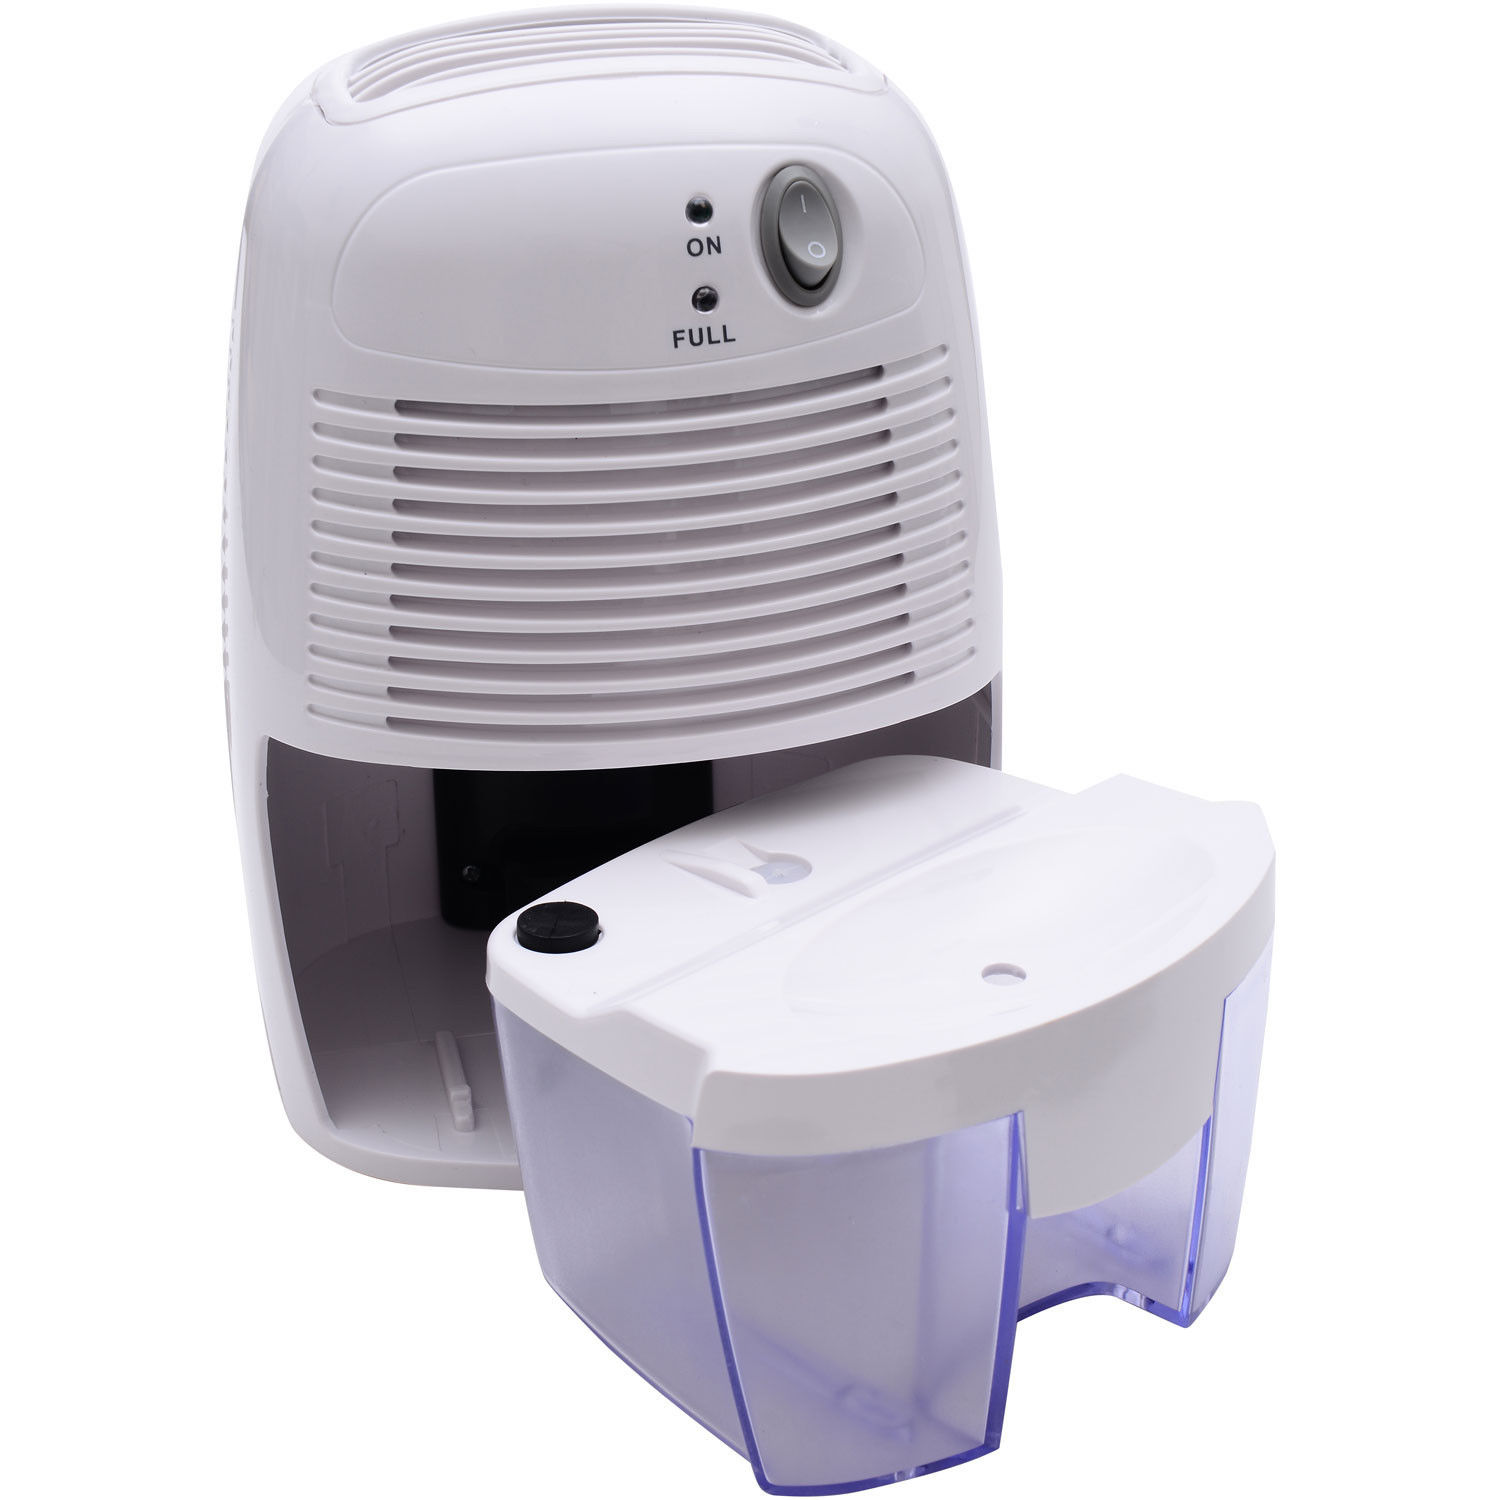 Mini Room Dehumidifier Electric Air Moisture Drying Absorber ATL250 #423E8D